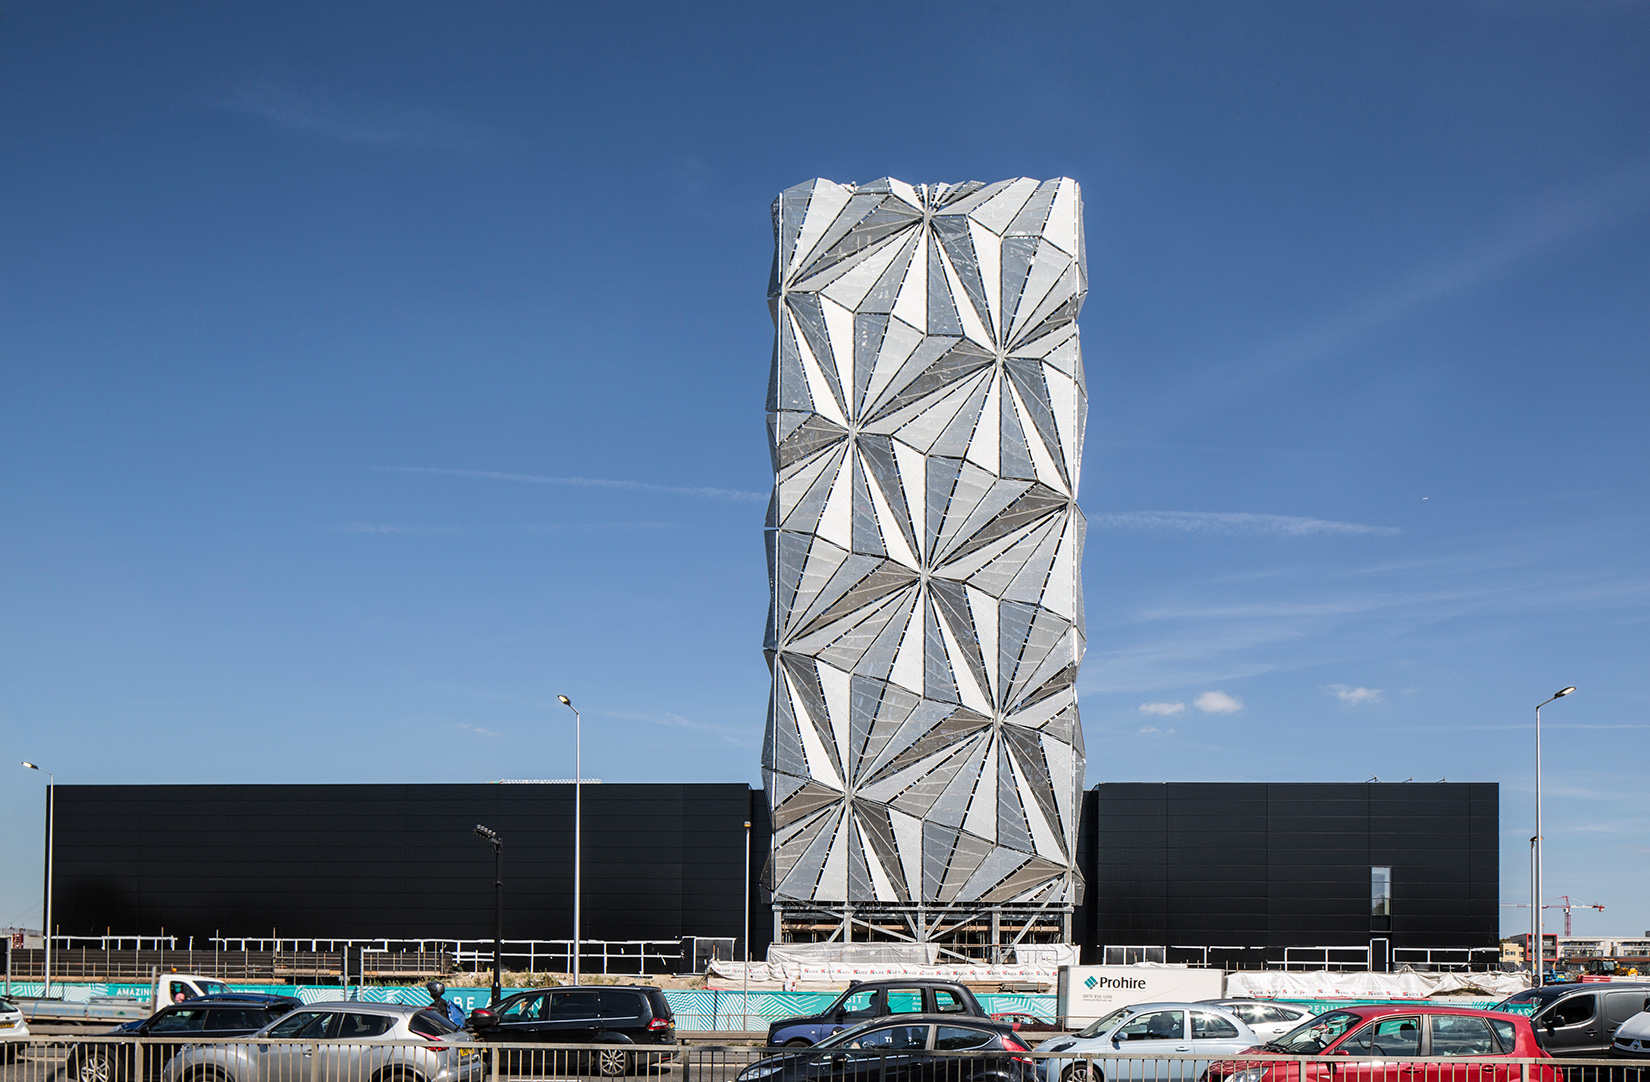 Conrad Shawcross Turns An Emissions Tower Into A Sculpture